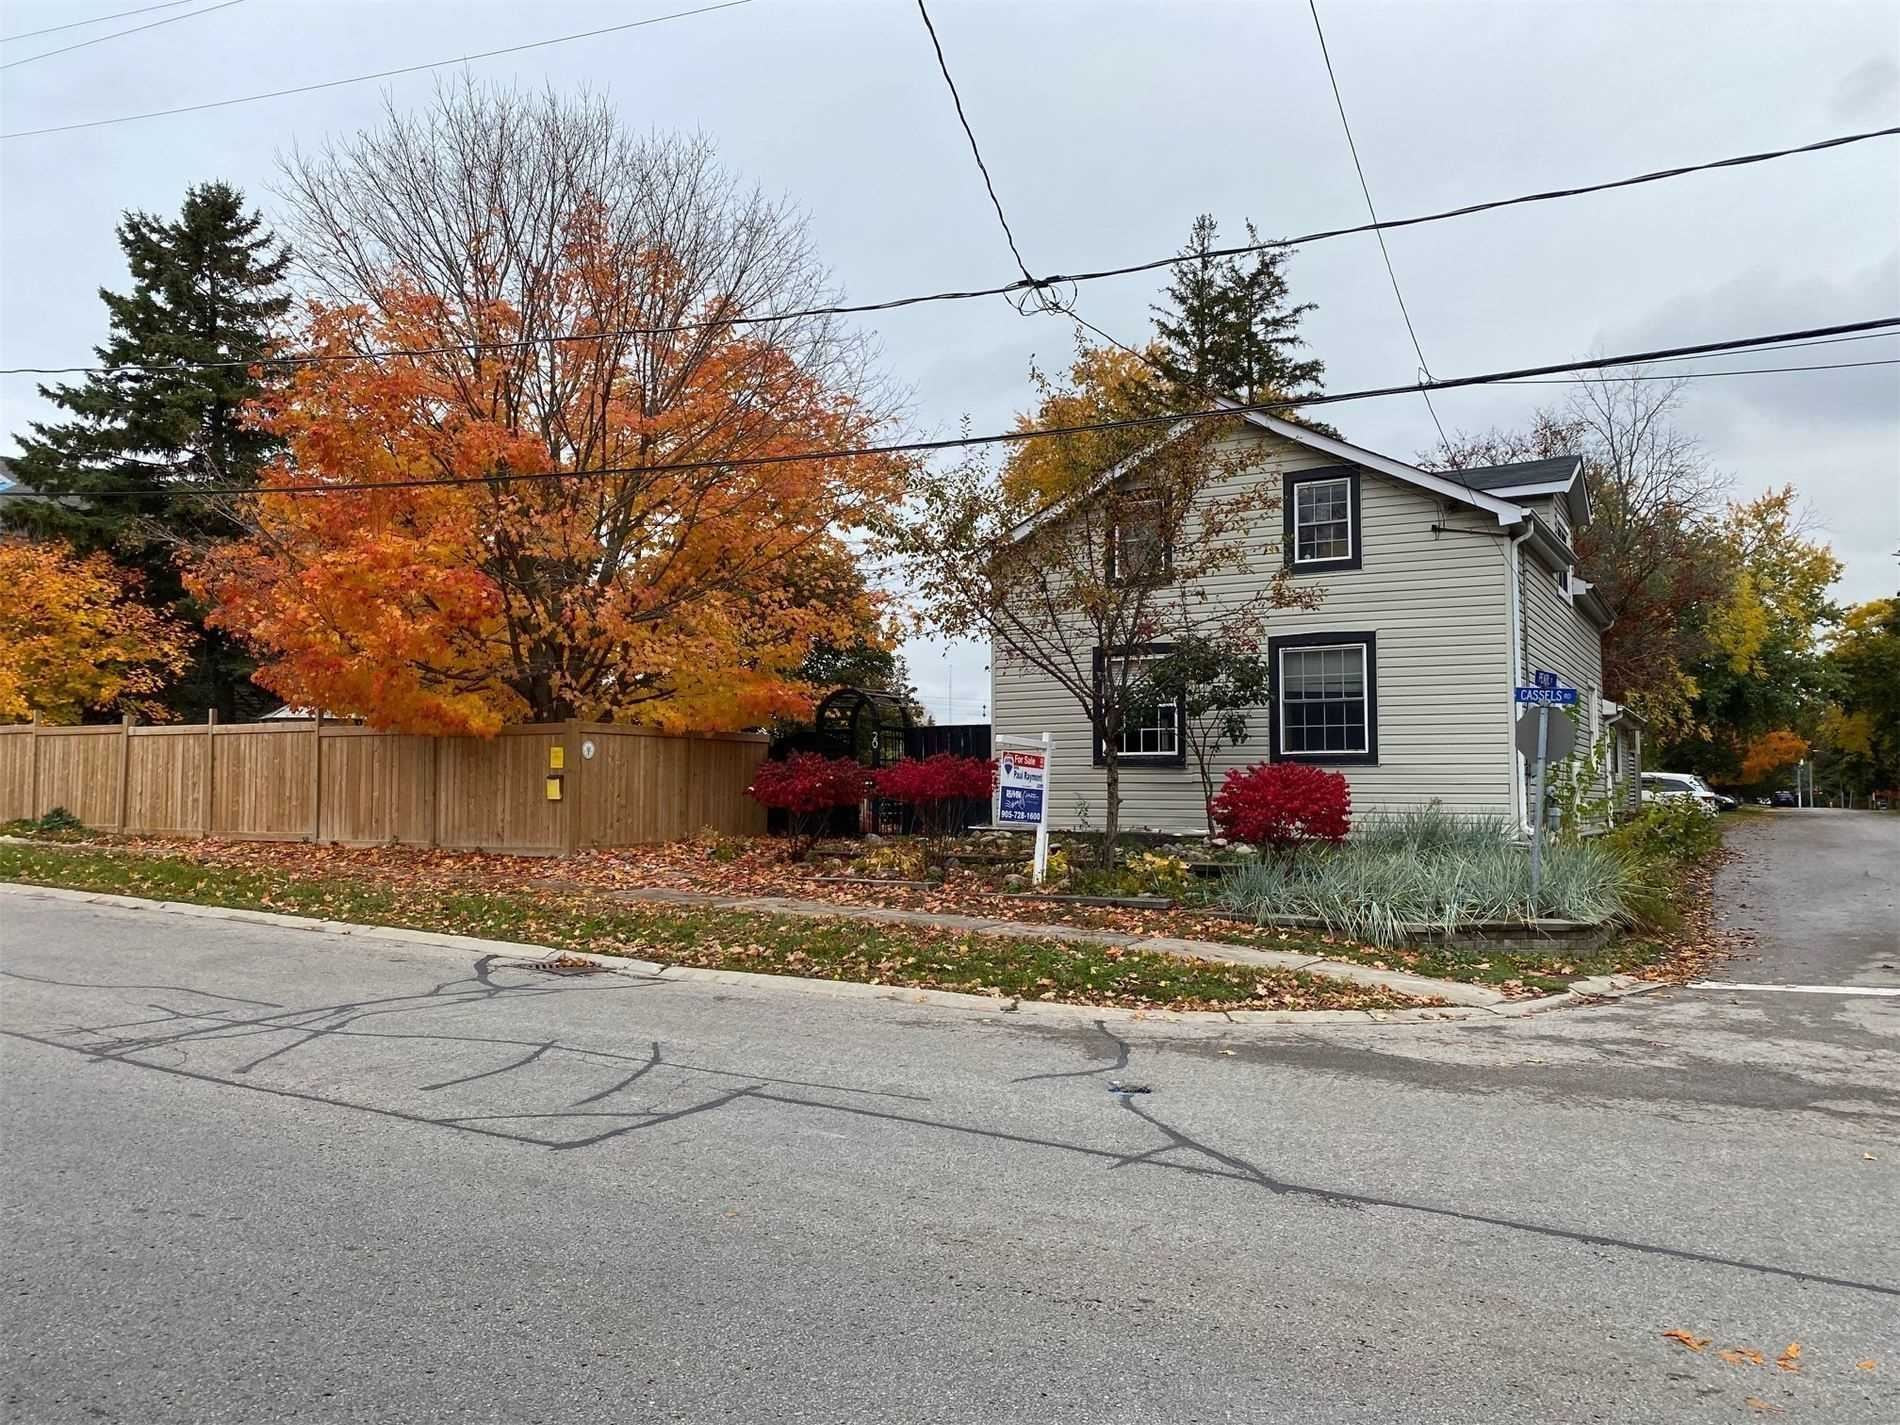 20 Cassels Rd E, Whitby, ON L1M1A4 - MLS#: E5193973